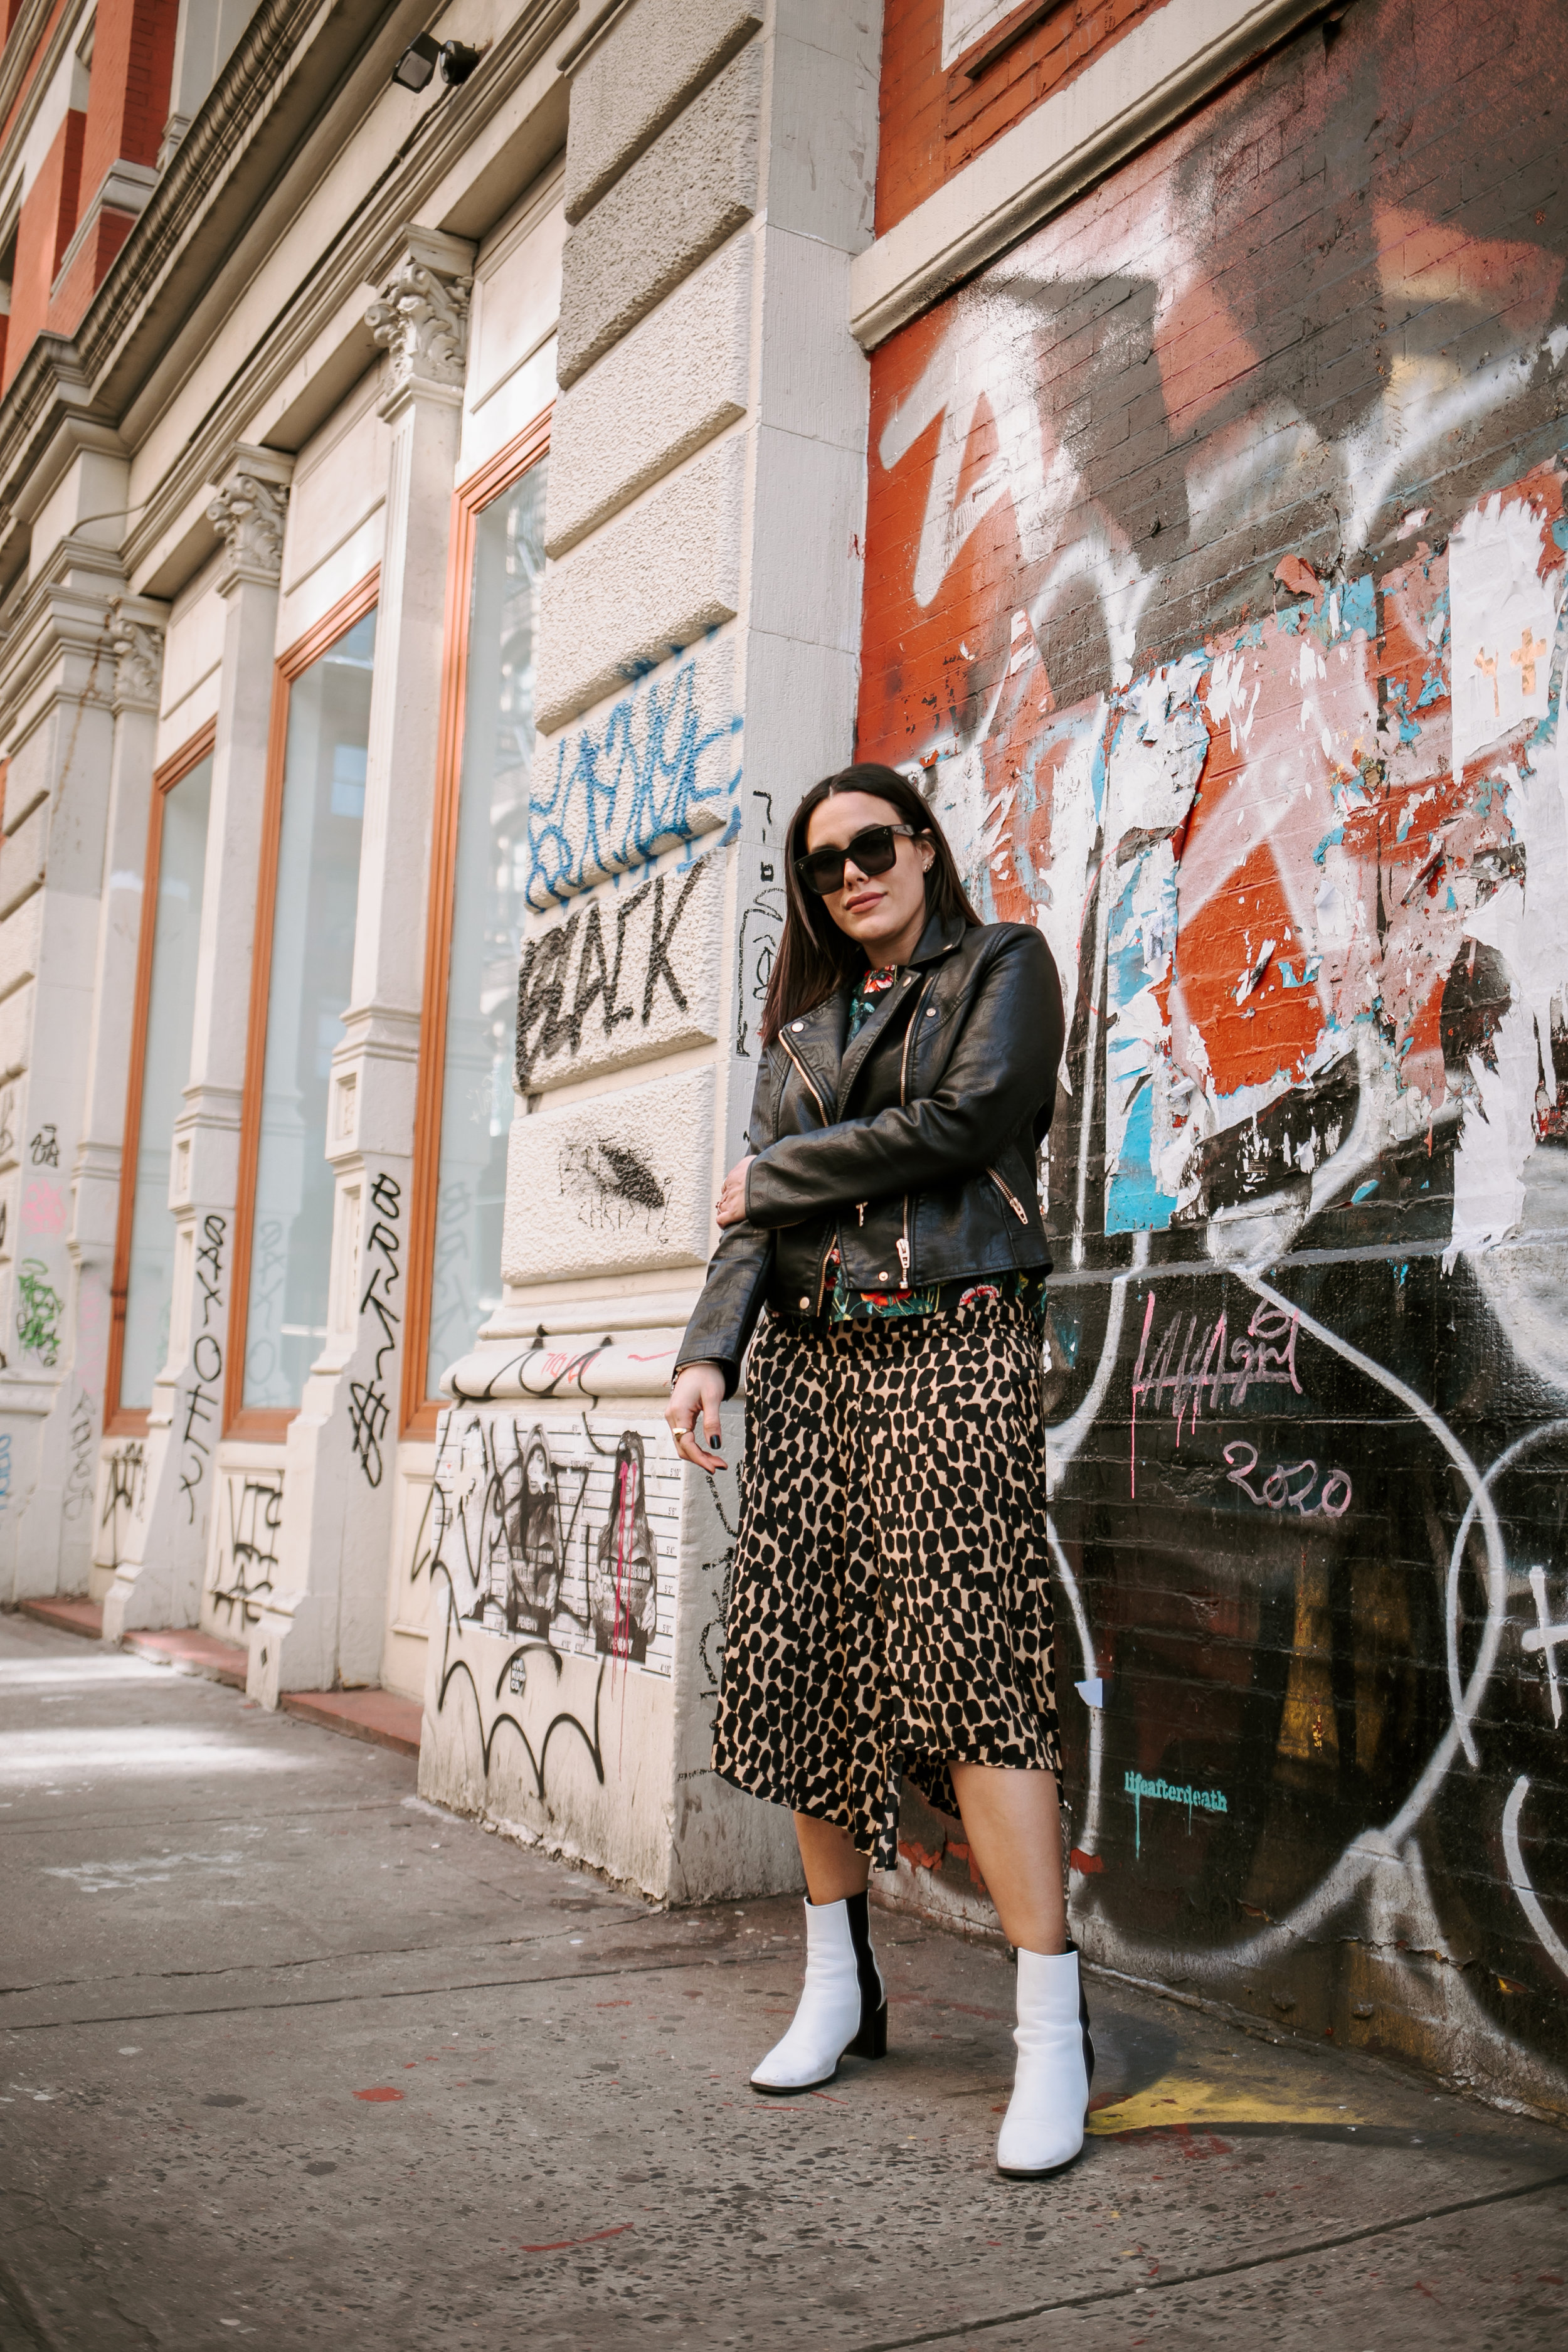 how-to-style-floral-top-with-leopard-skirt-how-to-mix-and-match-prints-latina-new-york-city-fashion-blogger-style-operator-spring-fashion.jpg